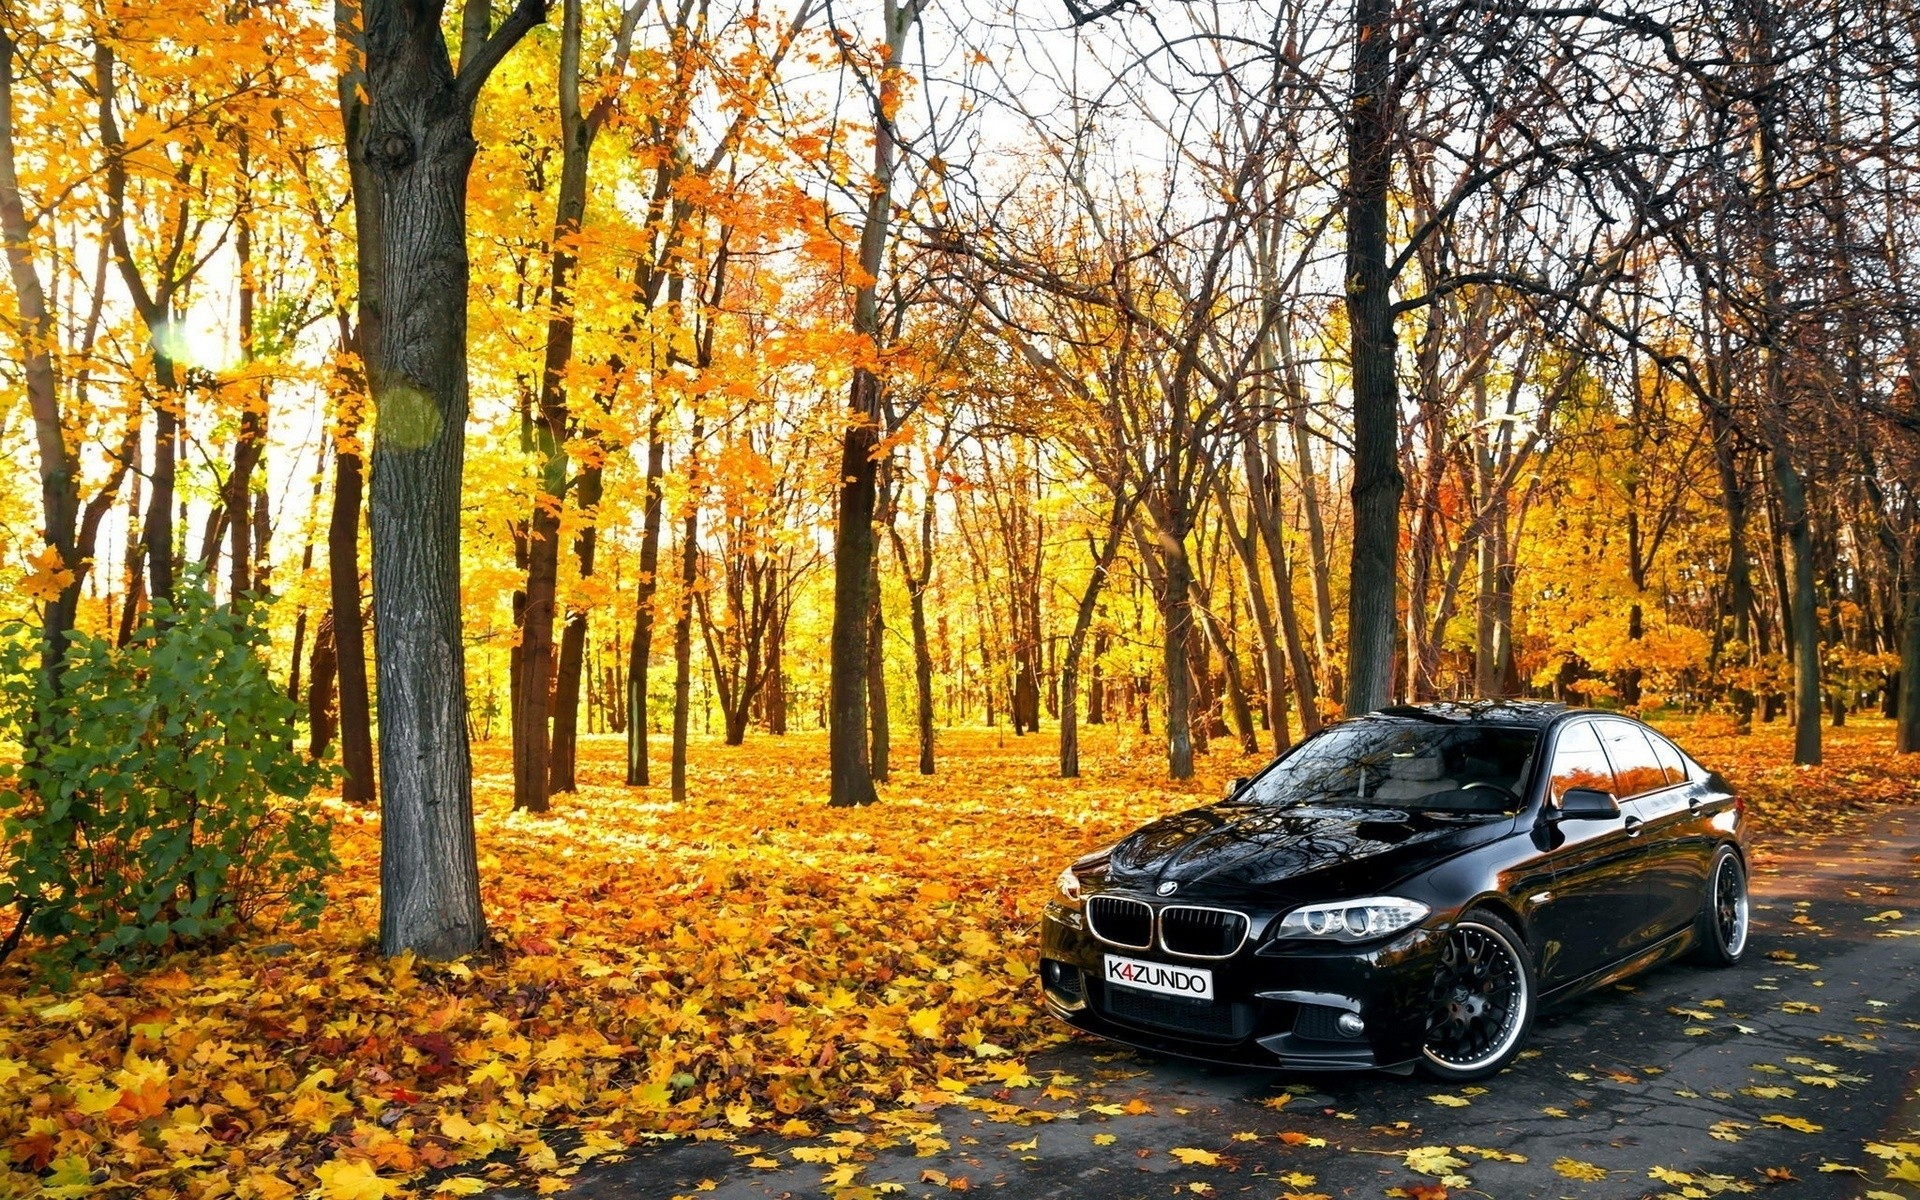 Fall In Love Mobile Wallpaper Forest Car Bmw Nature Road Wallpapers Hd Desktop And